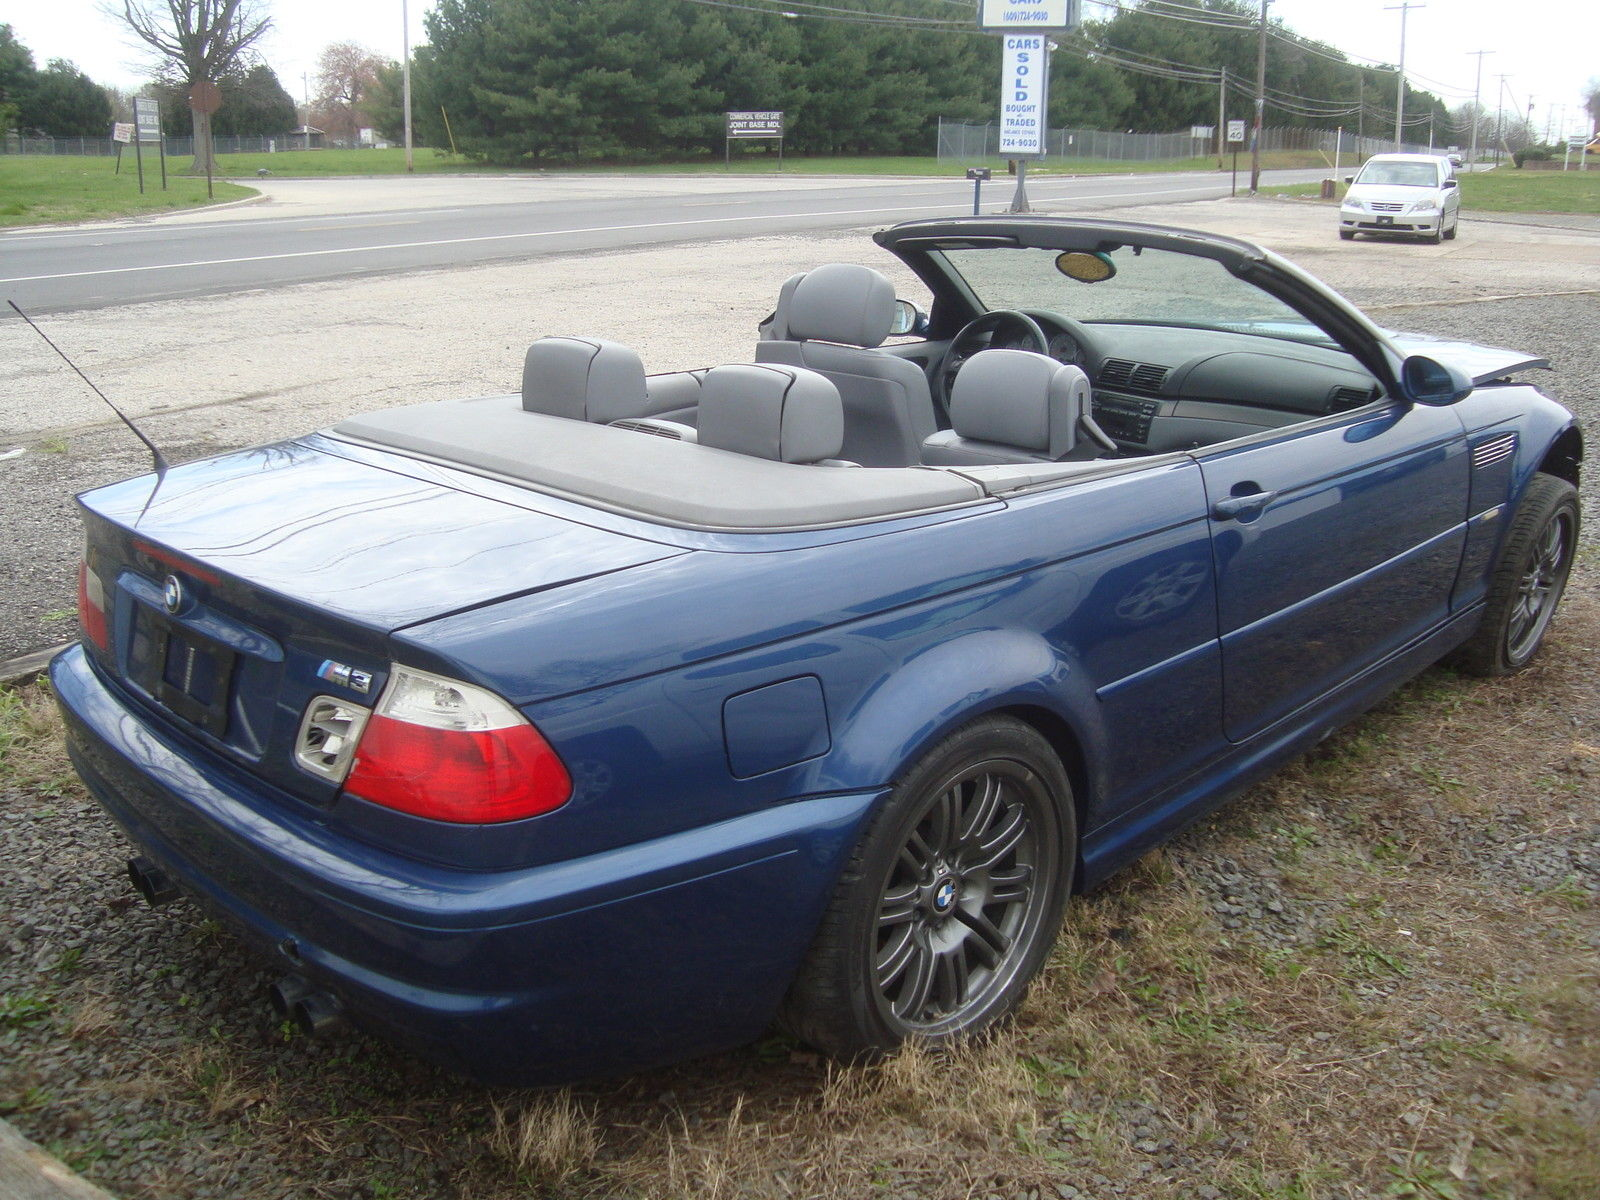 2012 Bmw 328i For Sale >> 2002 BMW M3 Convertible Salvage Rebuildable for sale